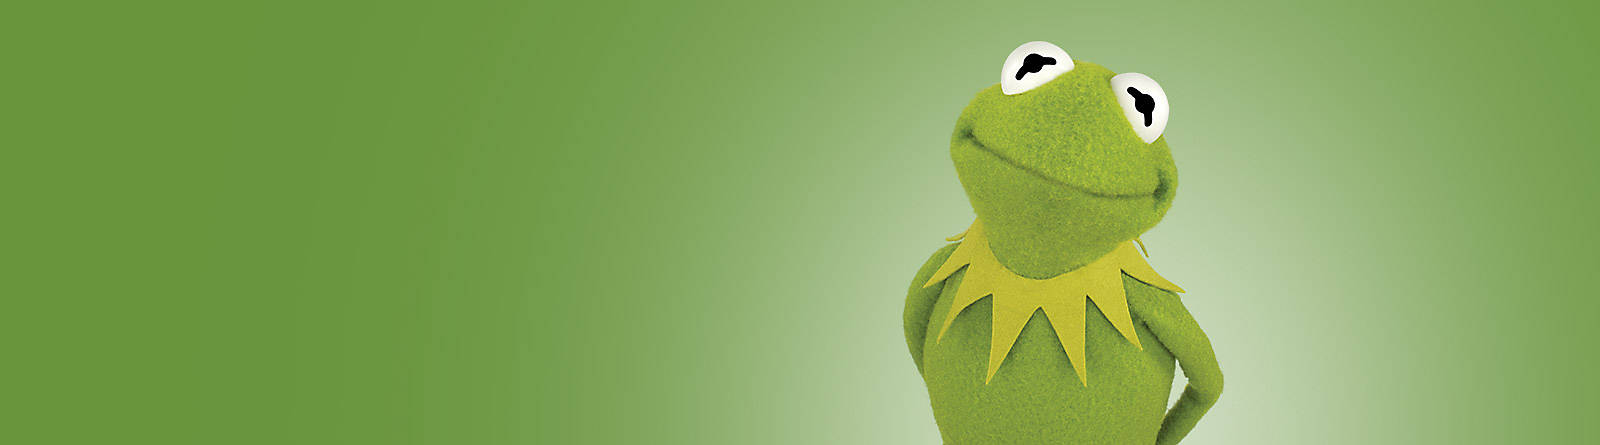 Muppets Check out the most sensational, inspirational, celebrational Muppets collection ever!